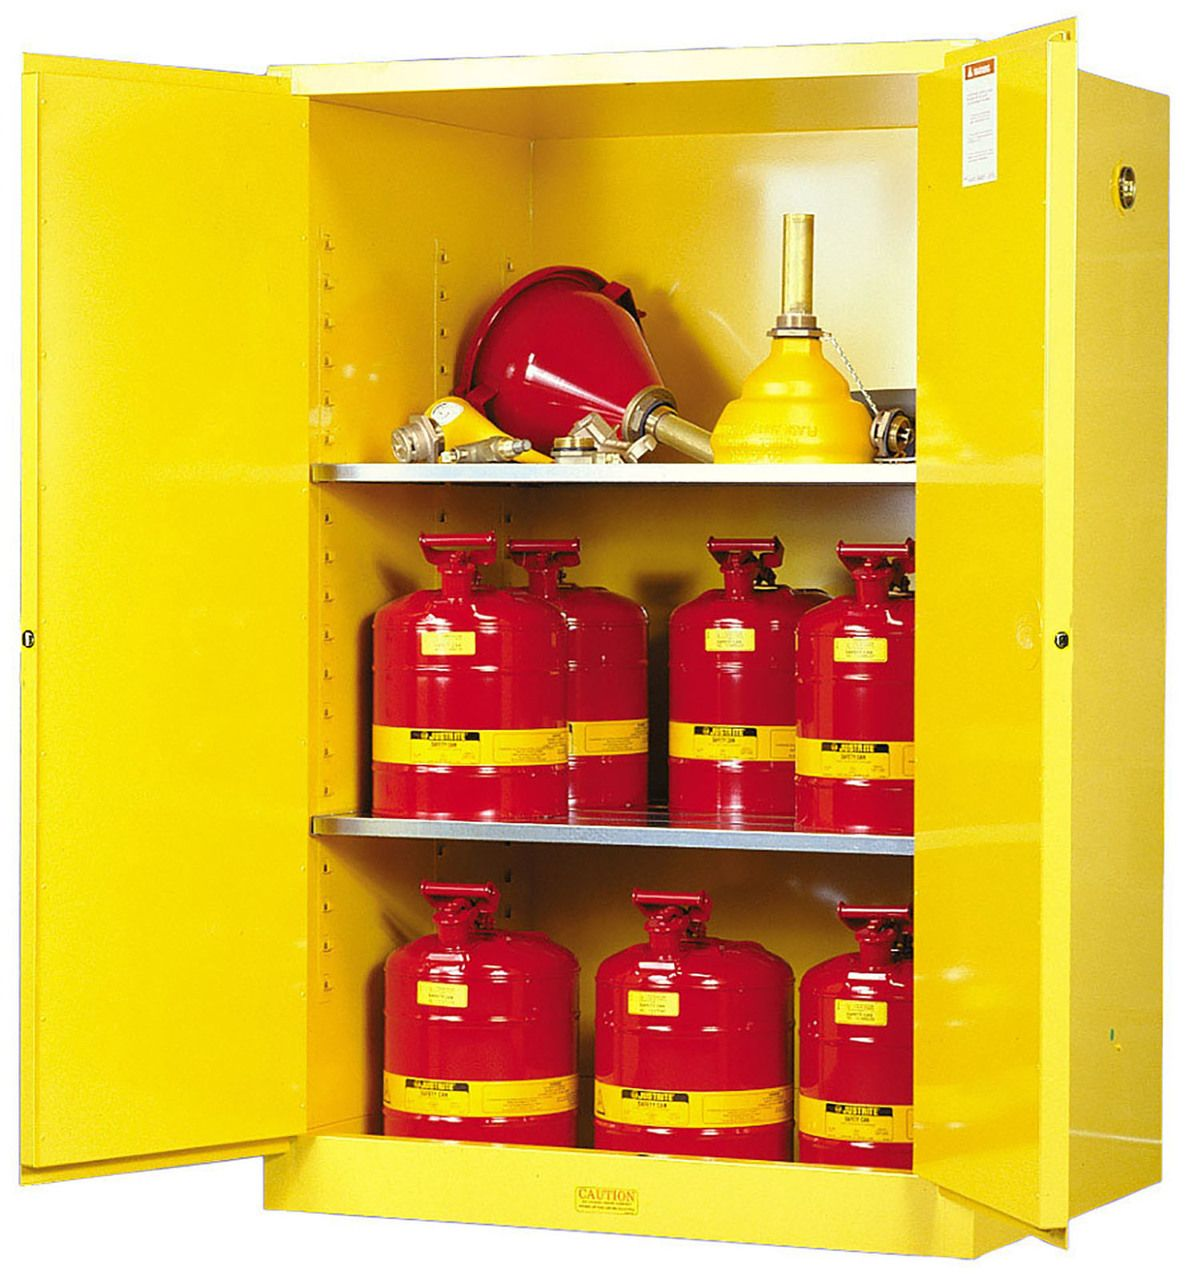 Justrite 90 gallon flammable safety storage